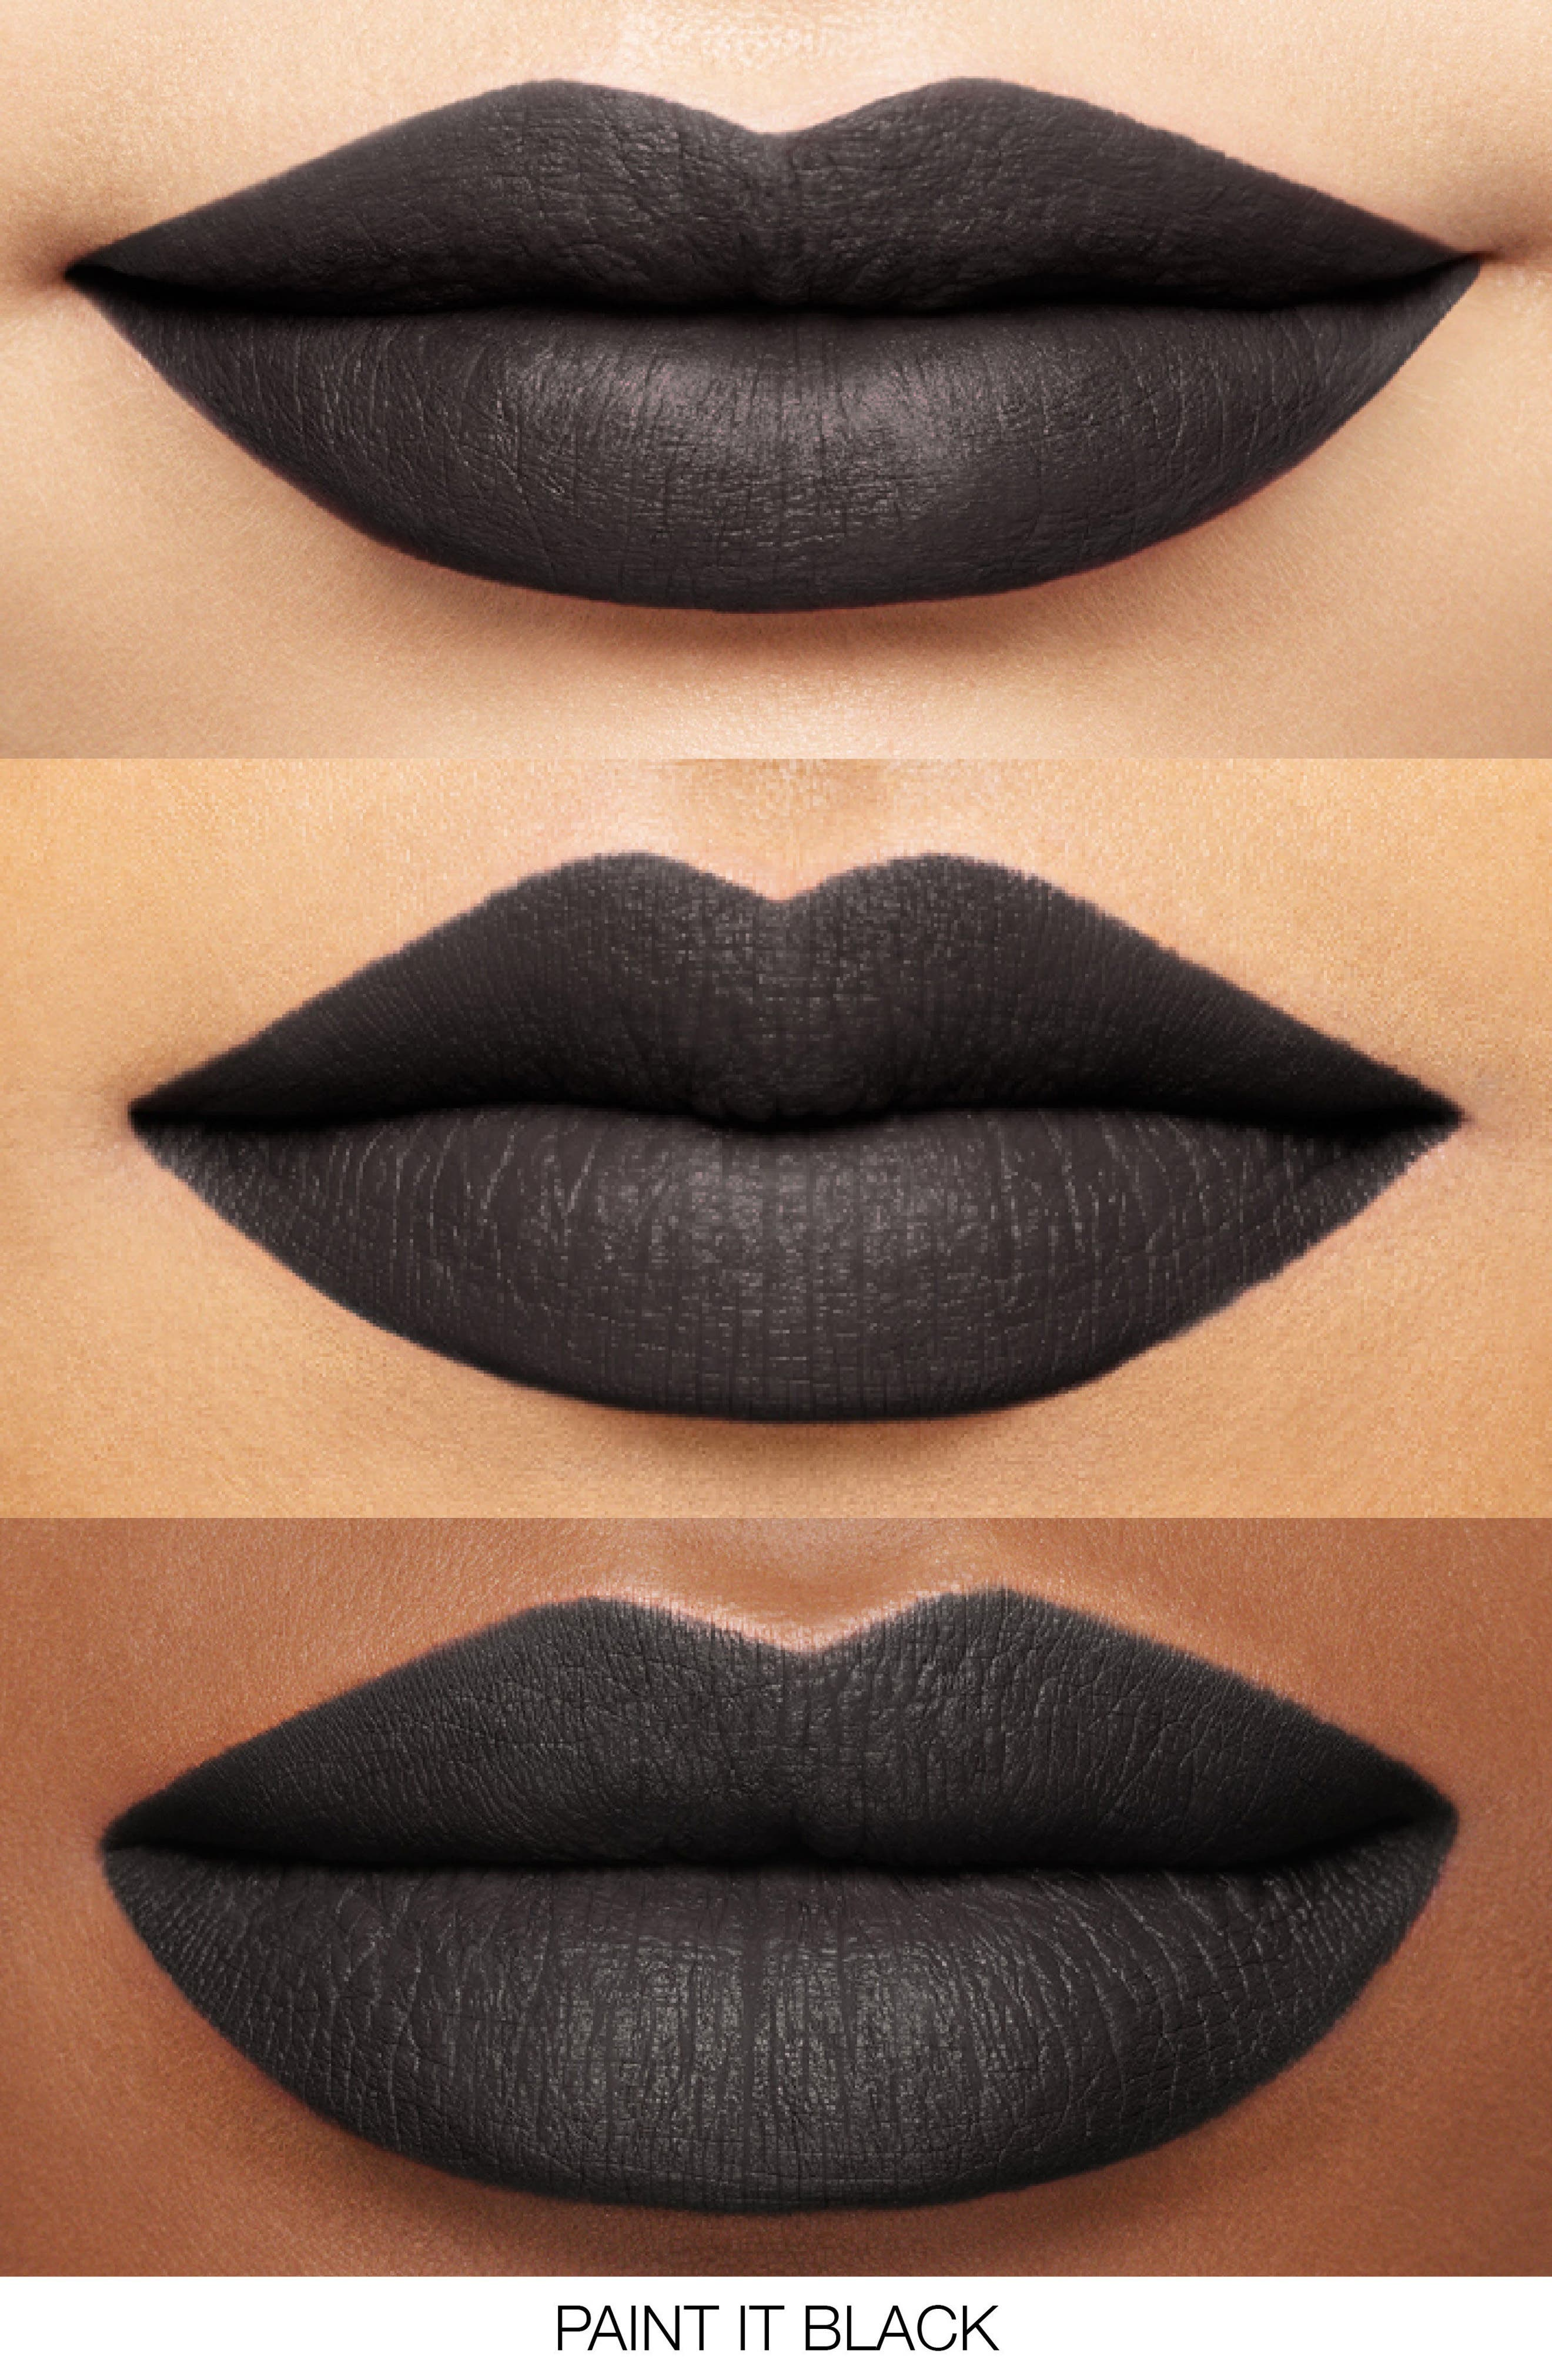 Powermatte Lip Pigment,                             Alternate thumbnail 2, color,                             PAINT IT BLACK